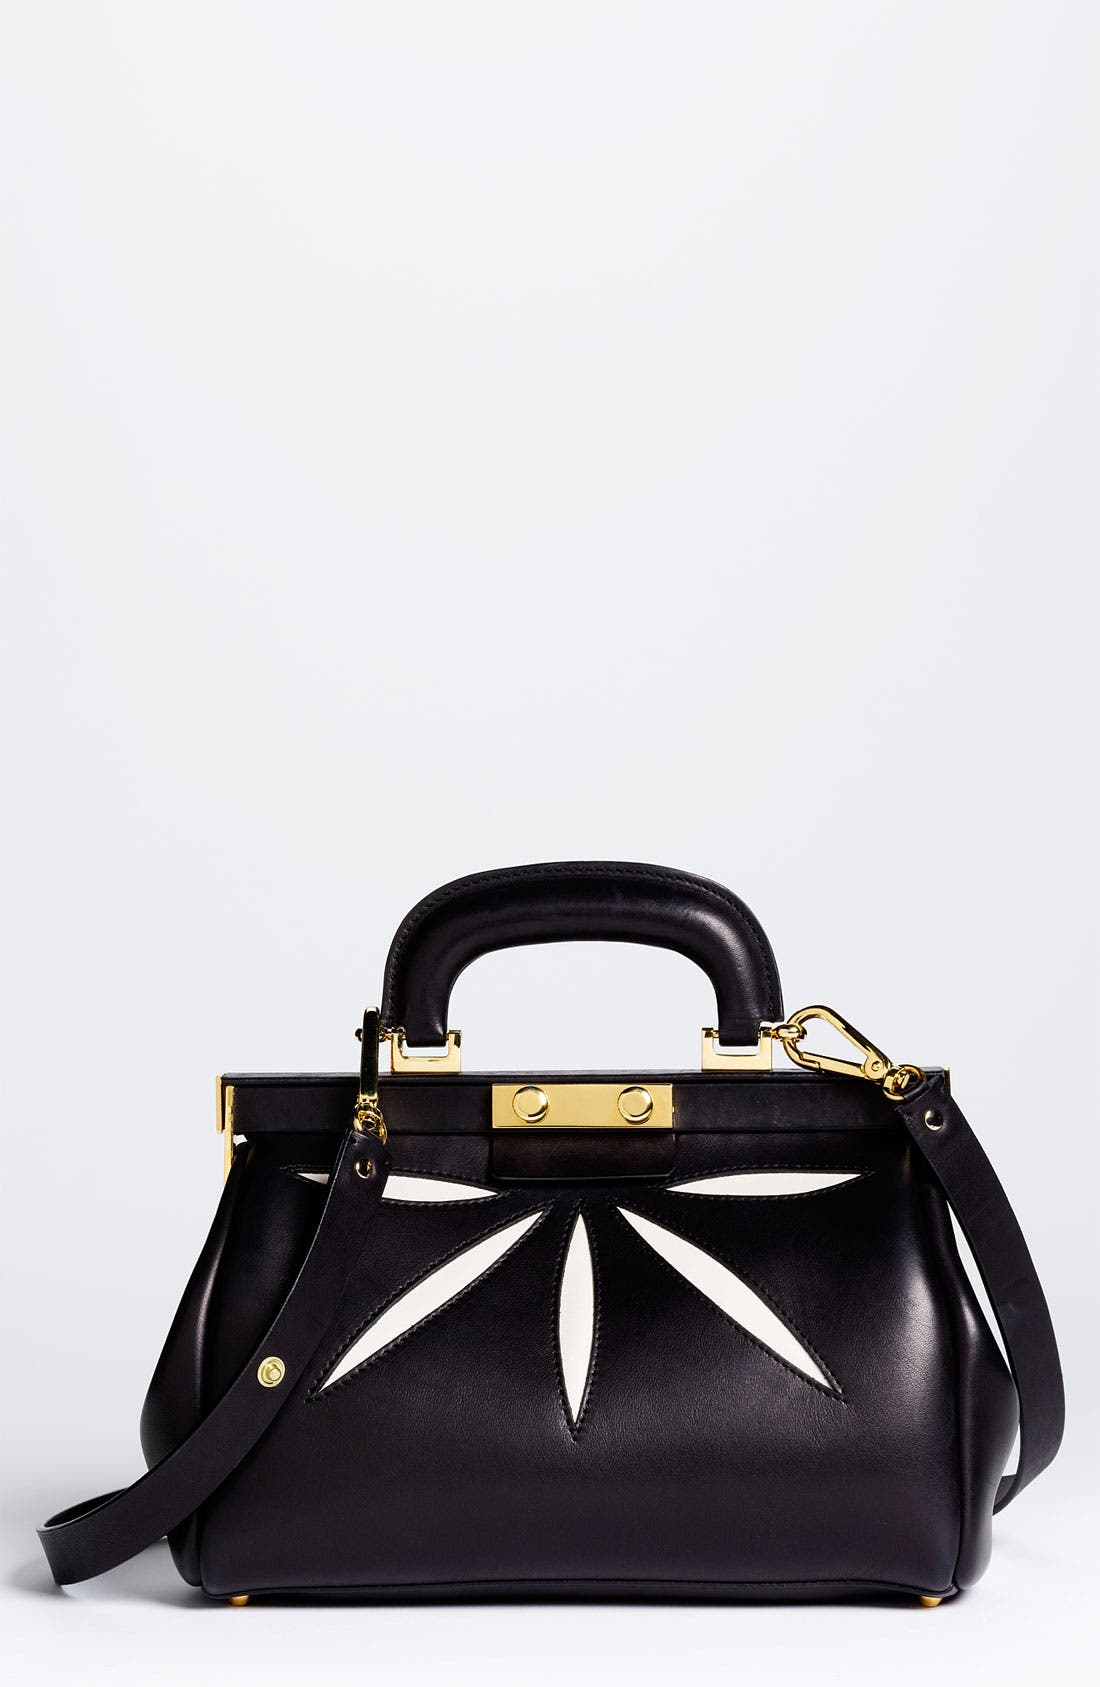 Alternate Image 1 Selected - Marni 'Mini' Leather Frame Bag